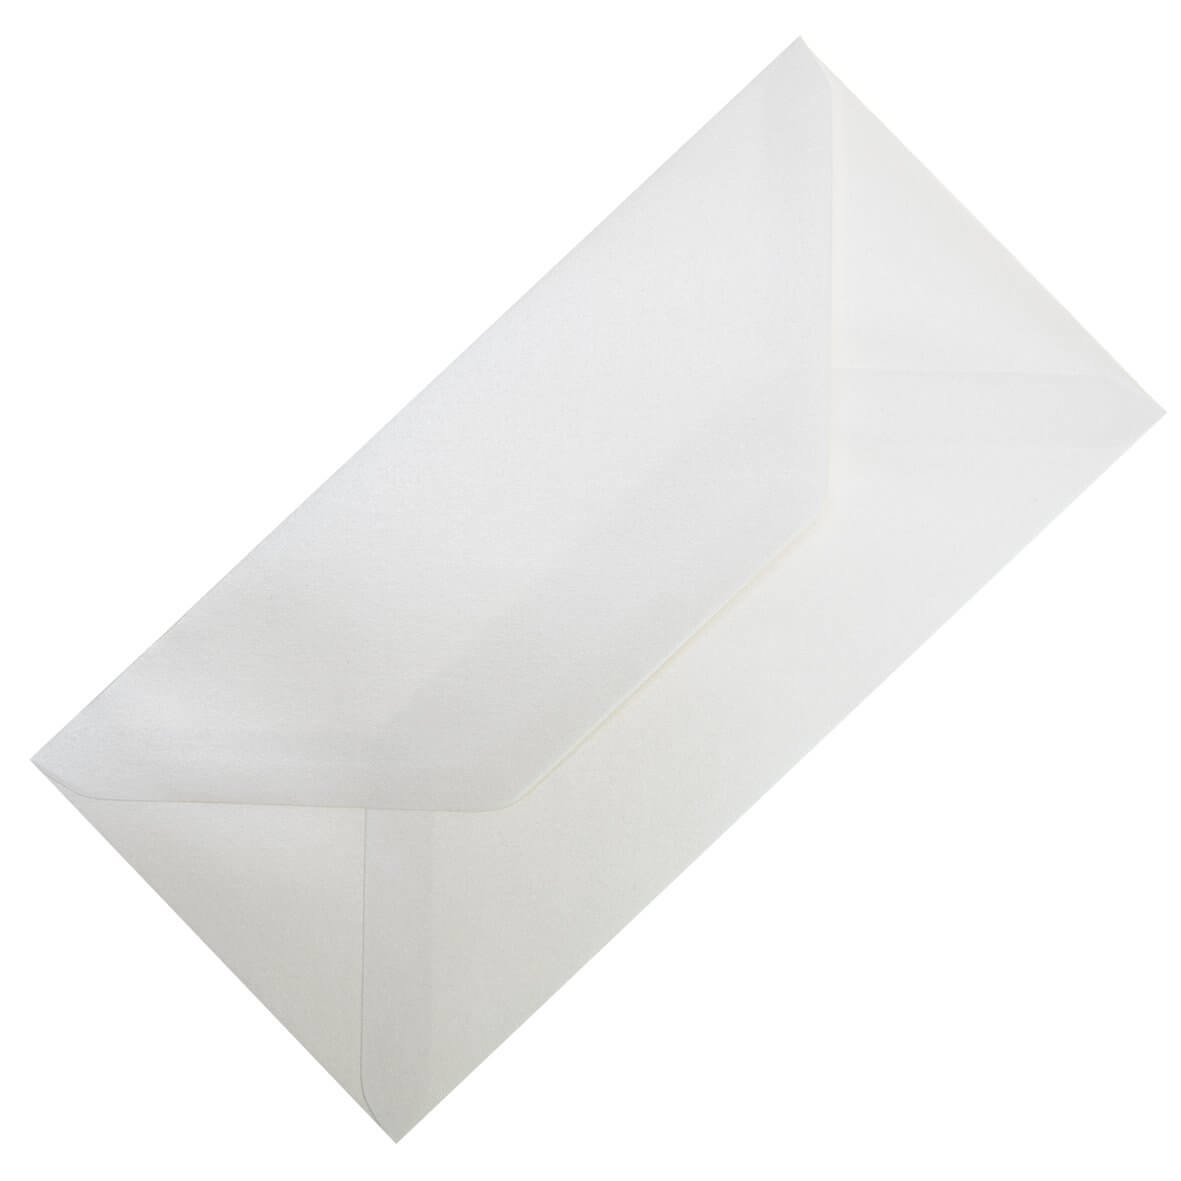 Pearlescent Ivory DL Envelope Large Tall - Zoom